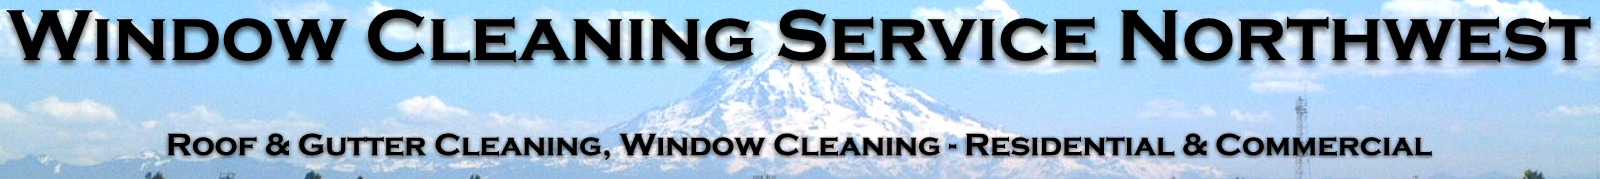 Window Cleaning Services Northwest